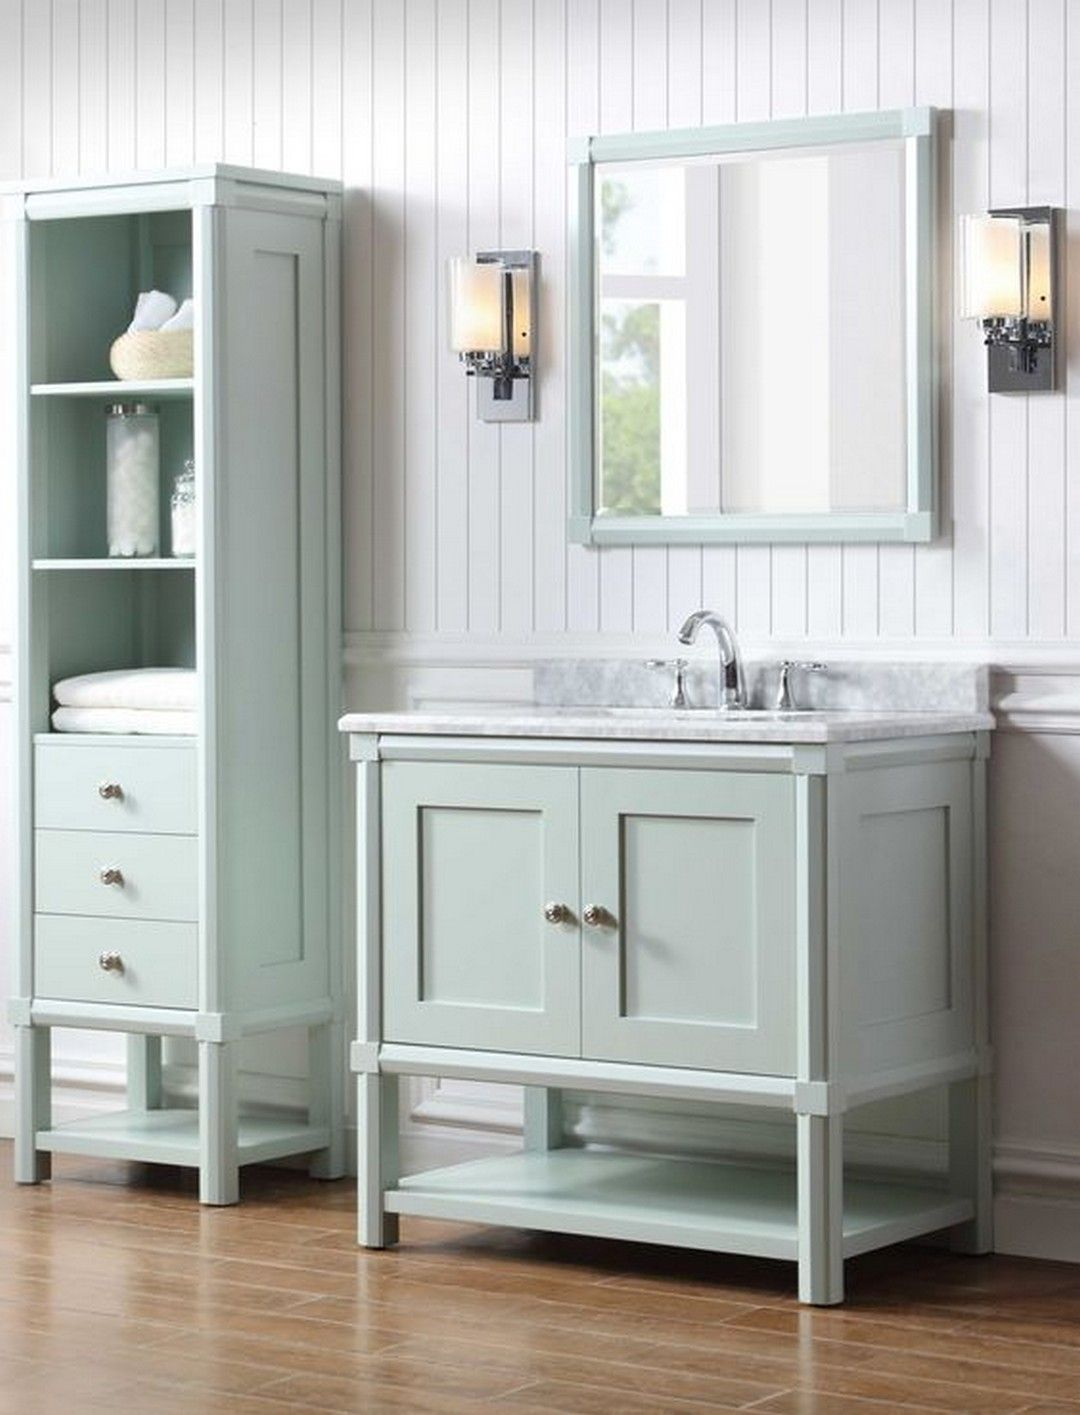 Martha Stewart Bathroom Ideas That Will Upgrade Your Ordinary